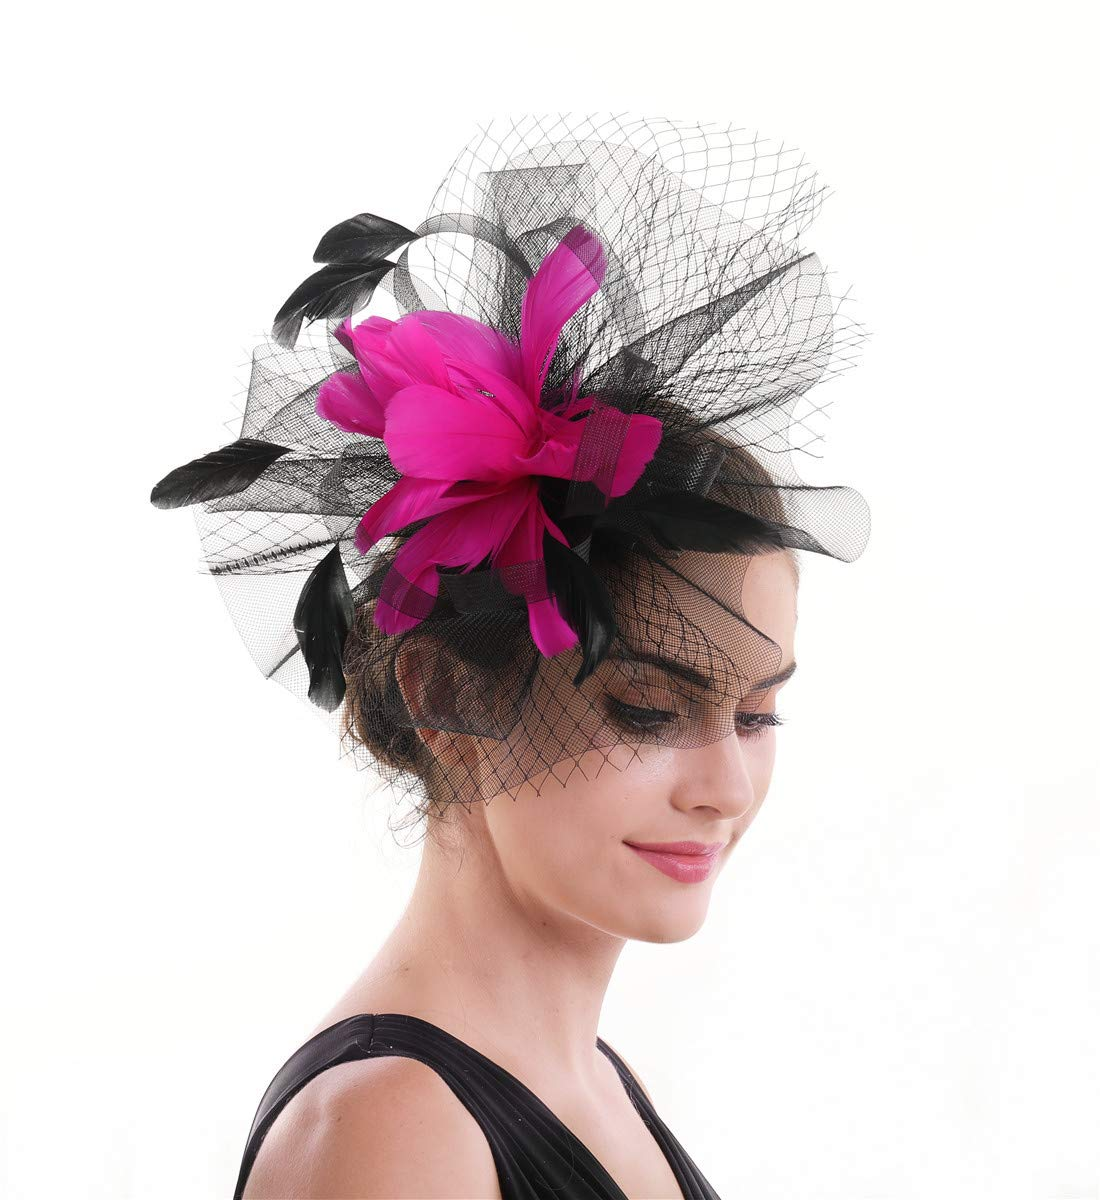 SAFERIN Fascinator Hat Feather Mesh Net Veil Party Derby Hat with Clip and Hairband for Women (b-Black Fuchsia) by SAFERIN